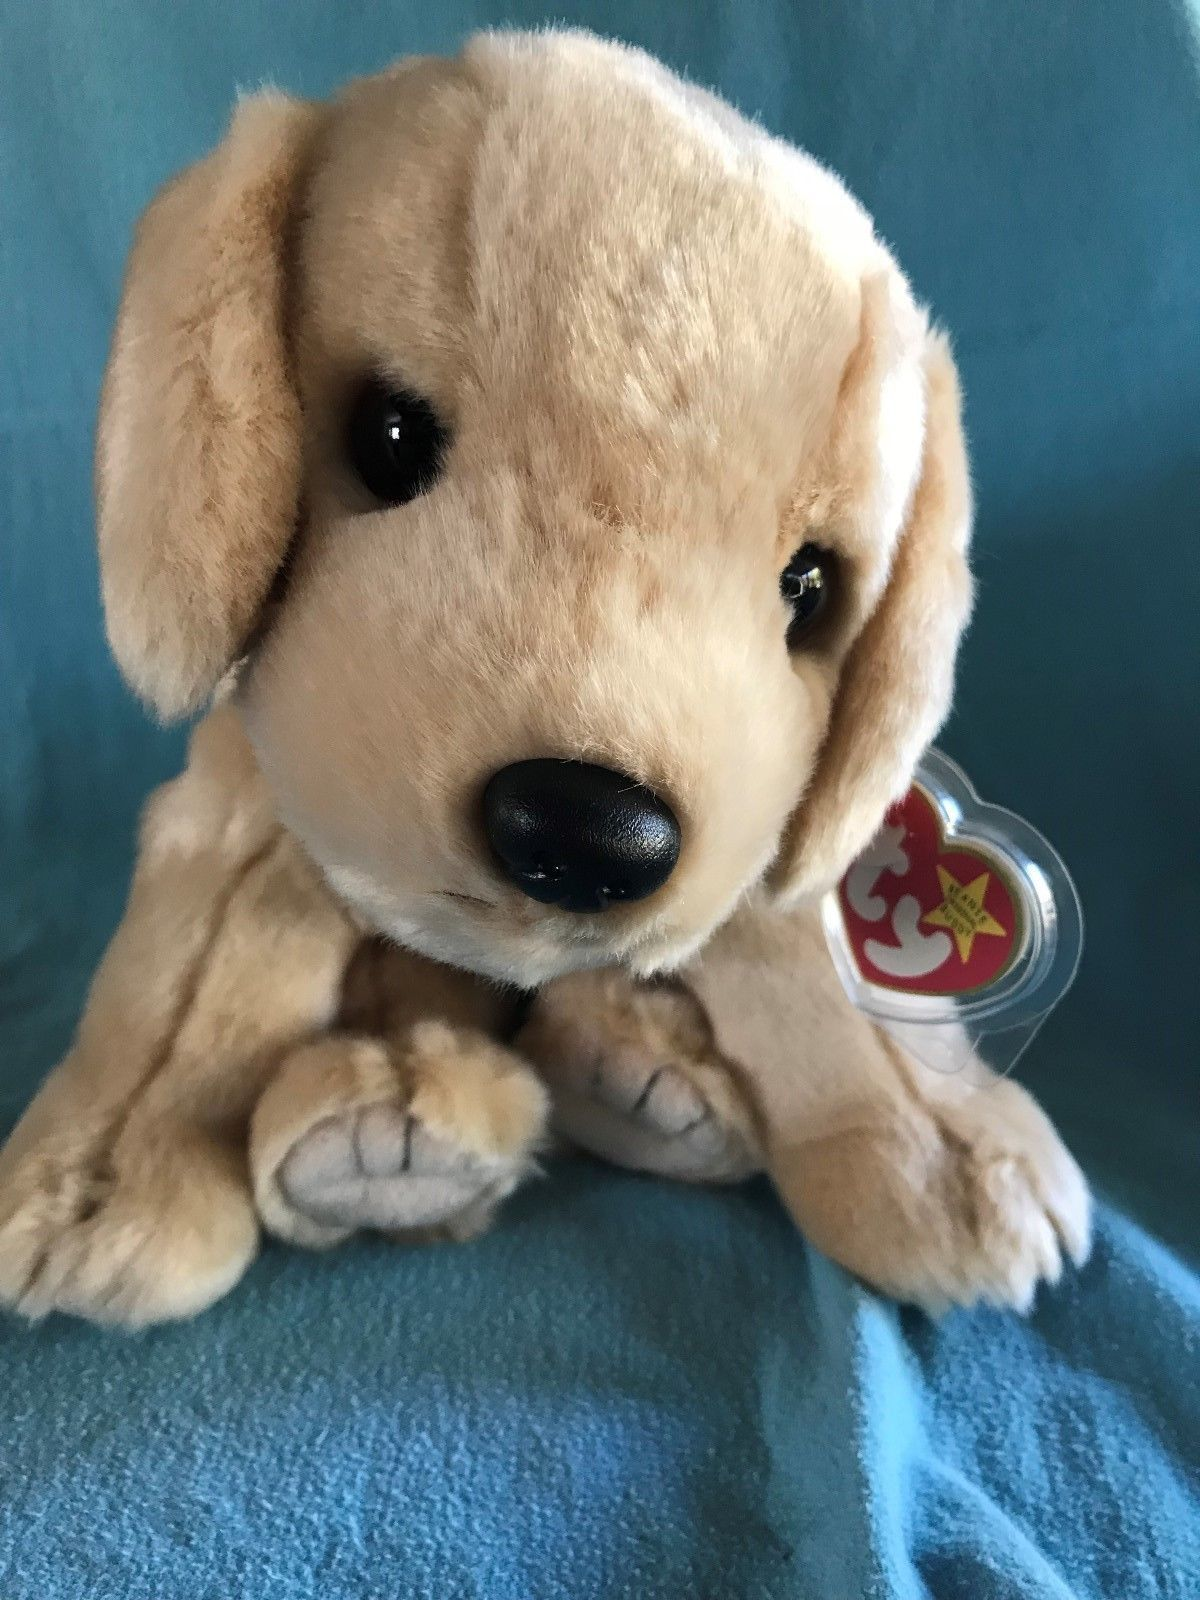 8bfd5831ca6 Mint! Ty Beanie Buddy Fetch the Golden Retriever MWMT Large Plush ...